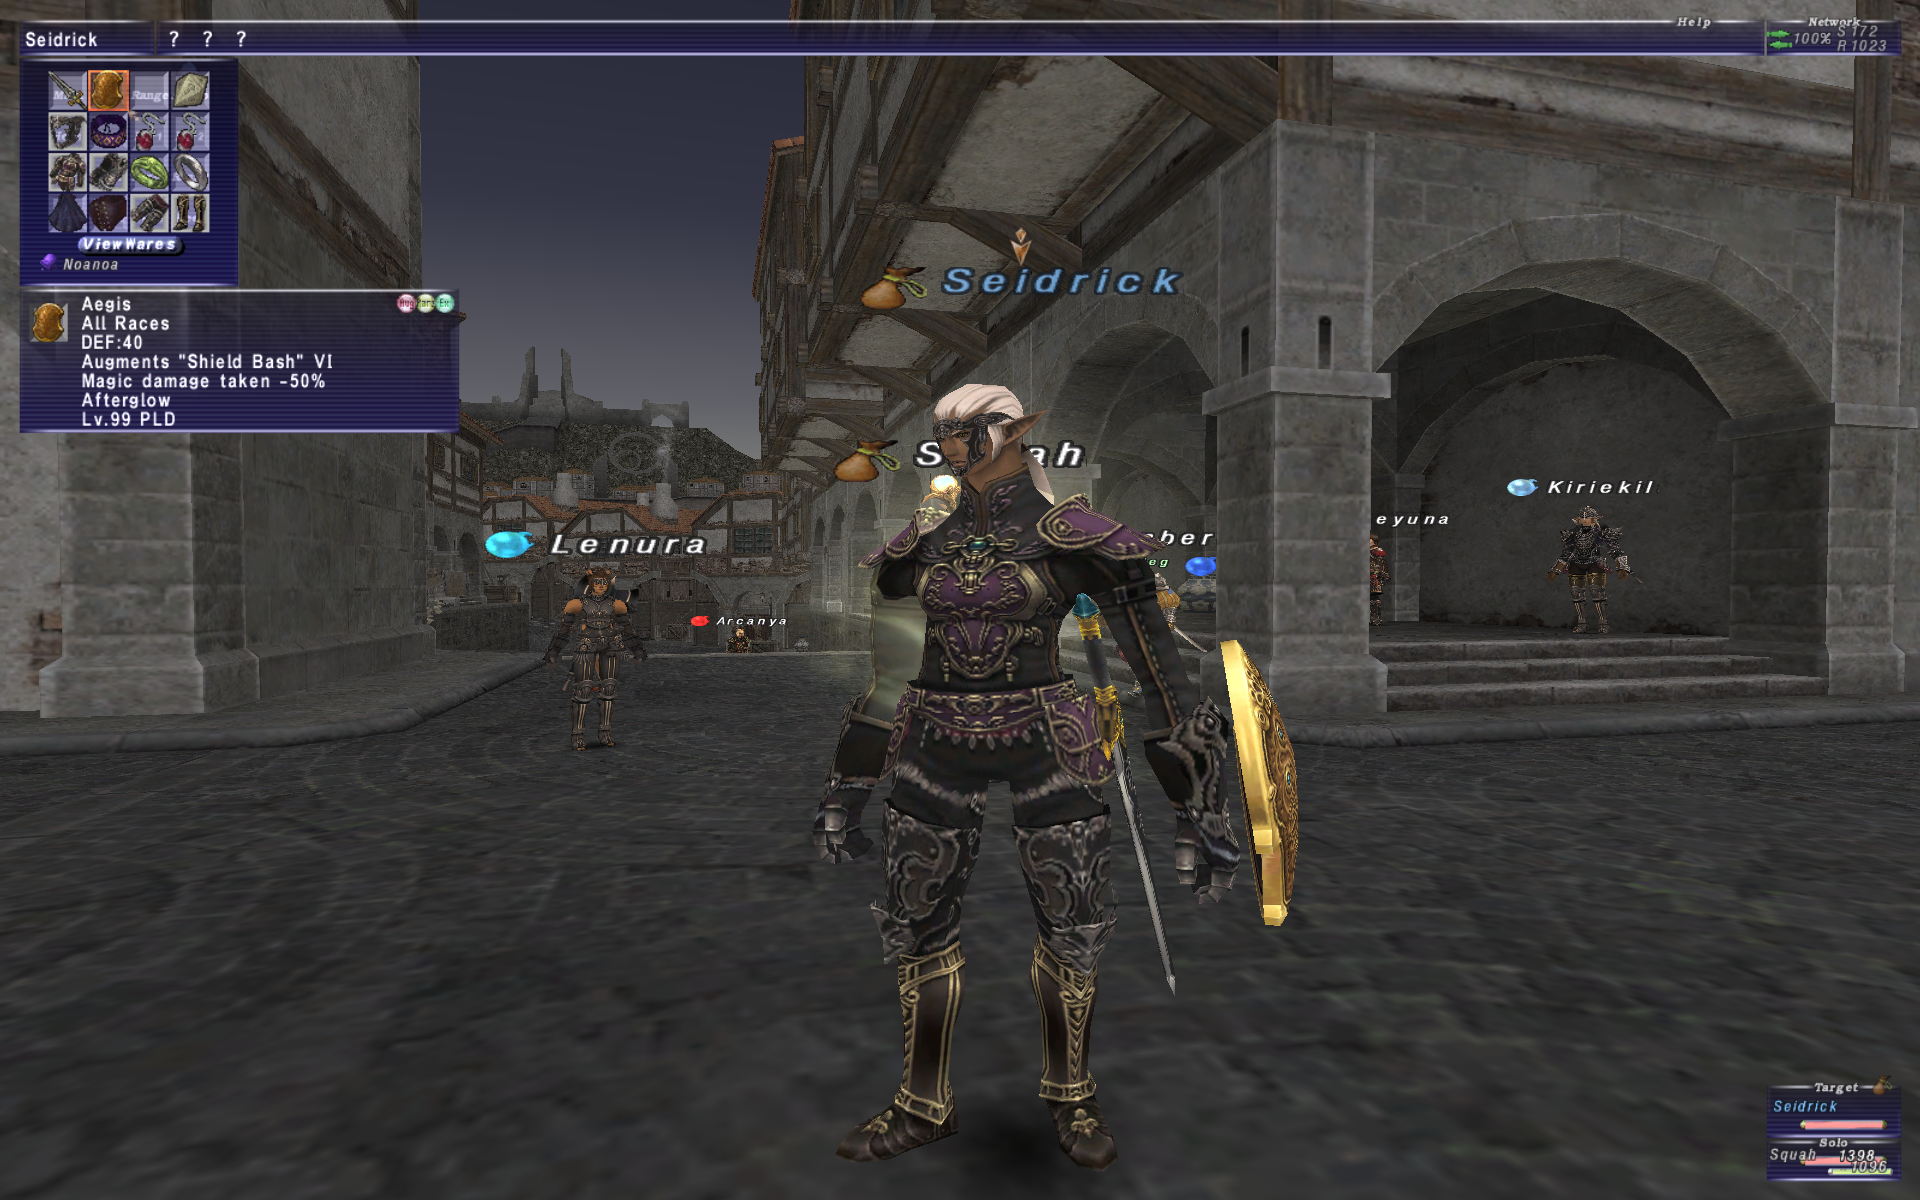 squah ffxi doing this that comes love down proph also caliburn grats tool shame like prophett moirai leviathan list relicmythic weapons seems completed known time long forever